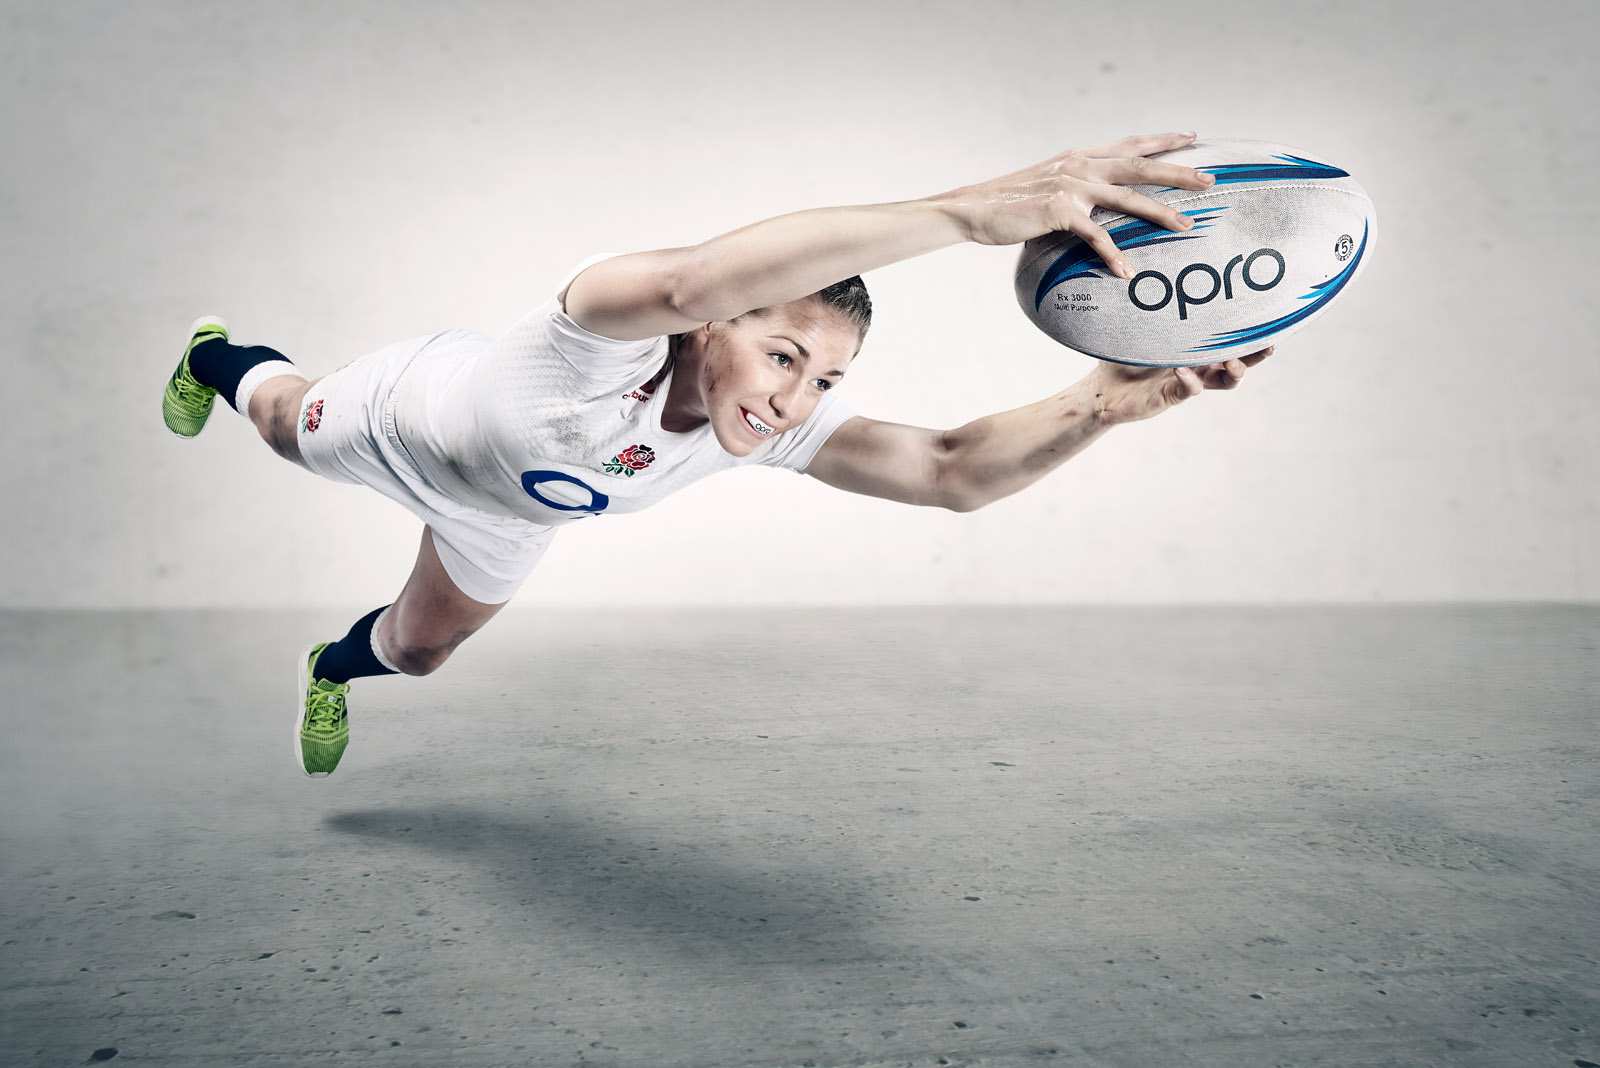 Emily Scarratt diving with the ball